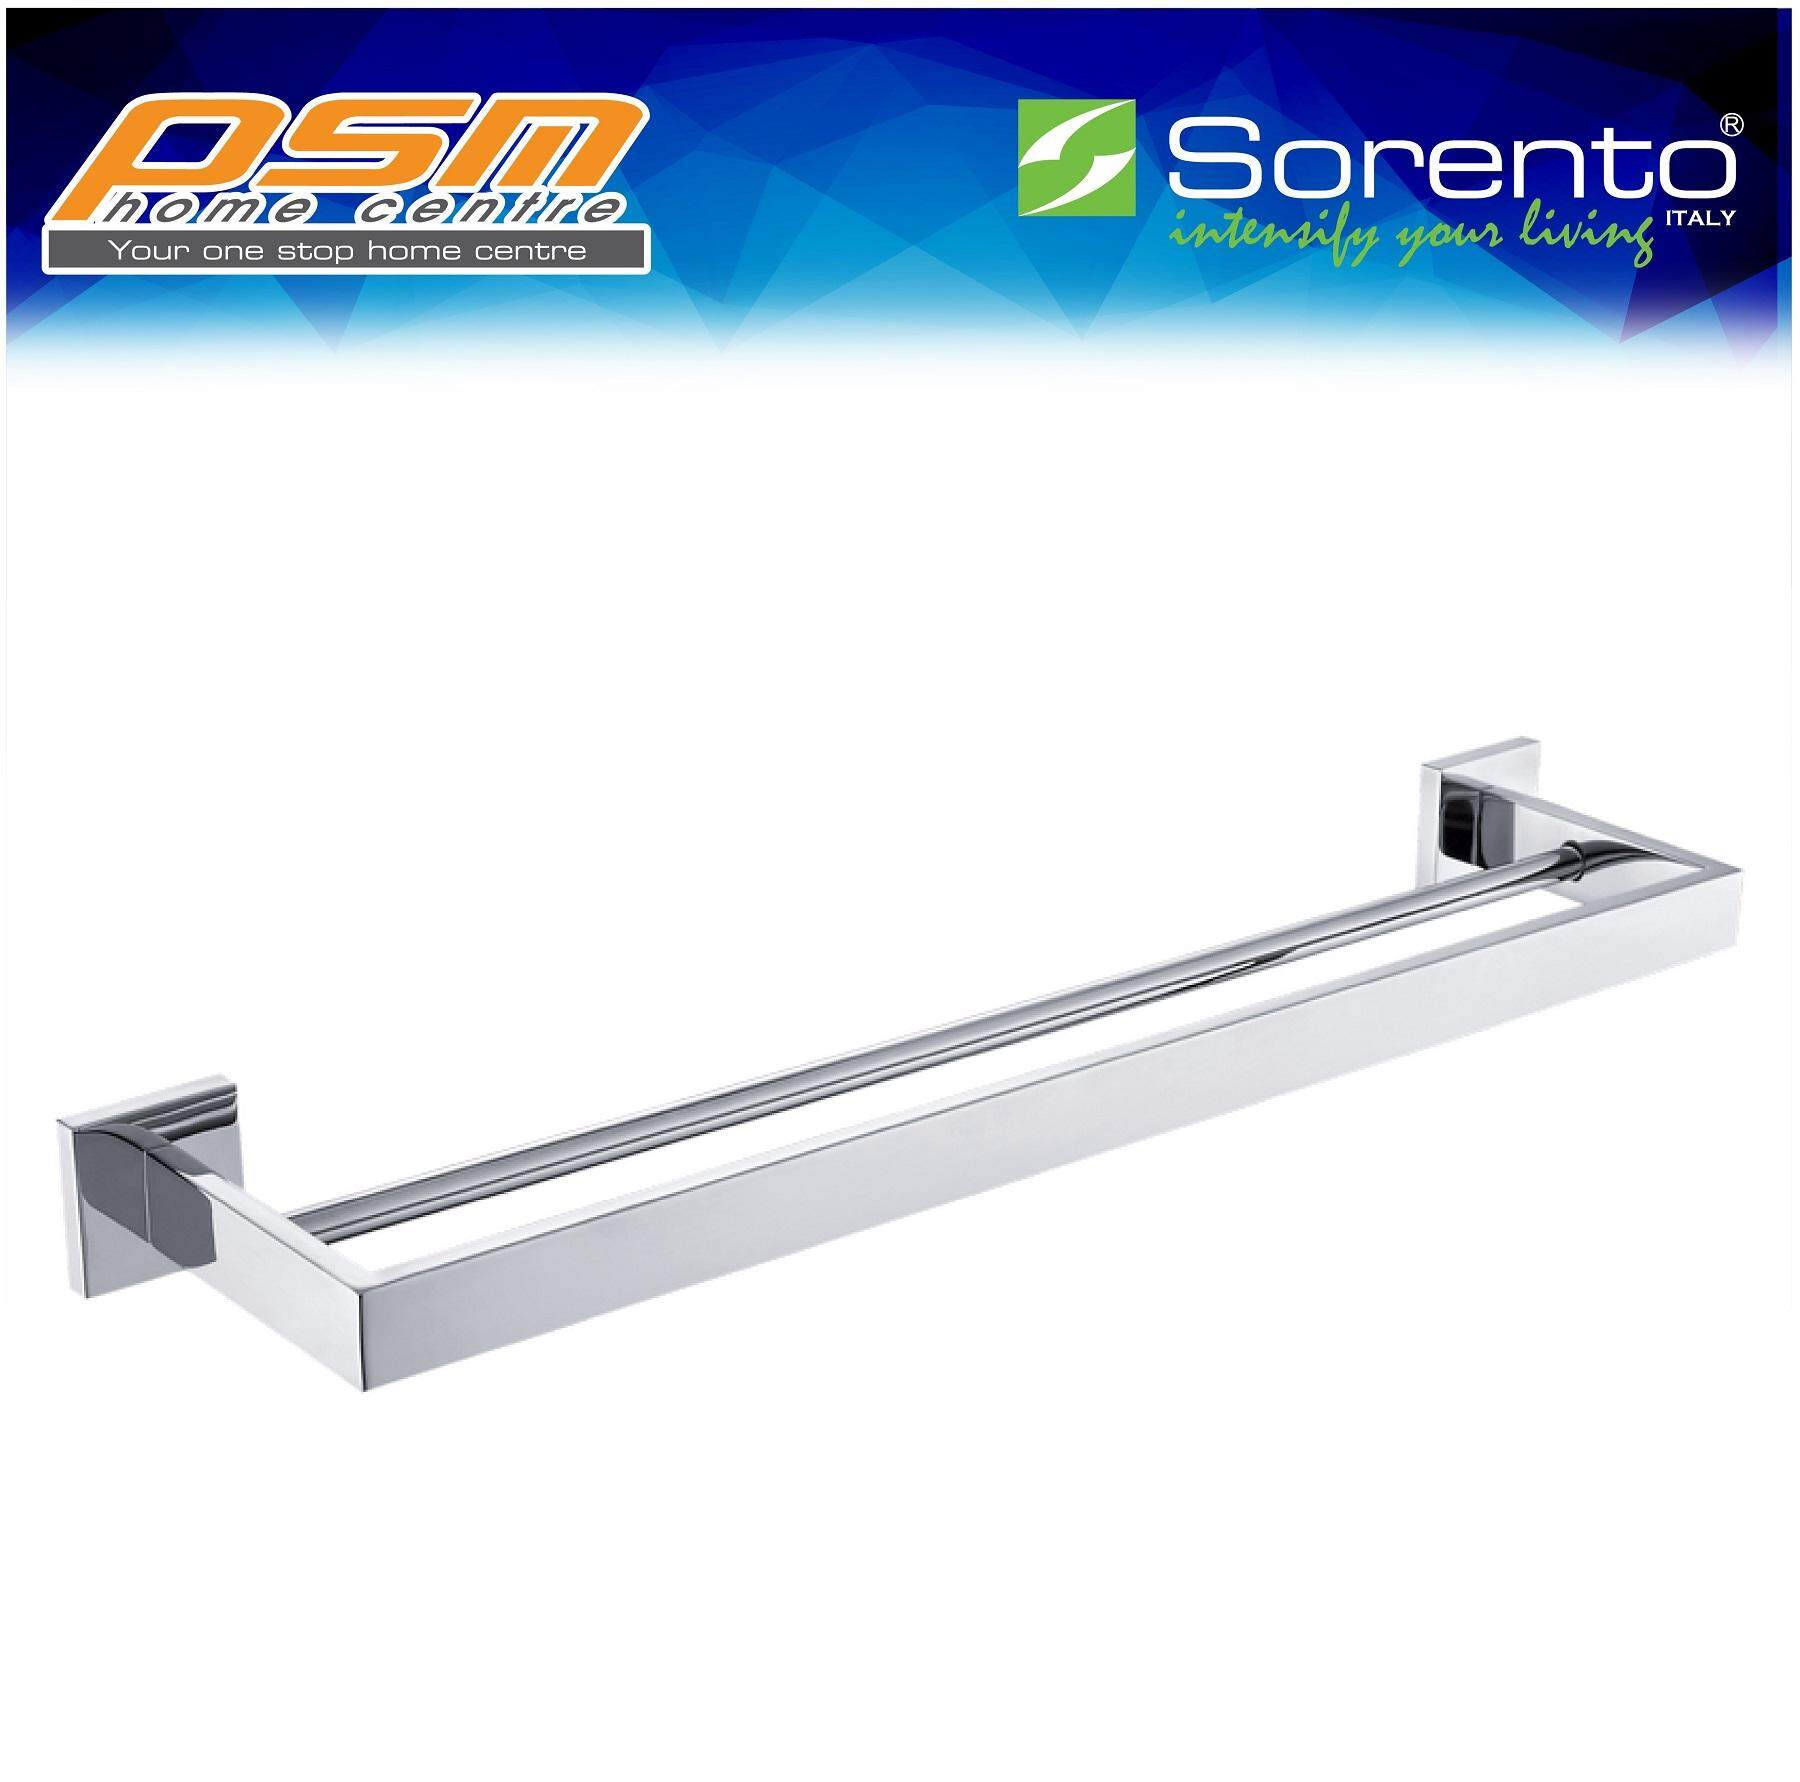 SORENTO Stainless Steel 304 Wall-Mounted Bathroom Double Layer Towel Bar SRT6013